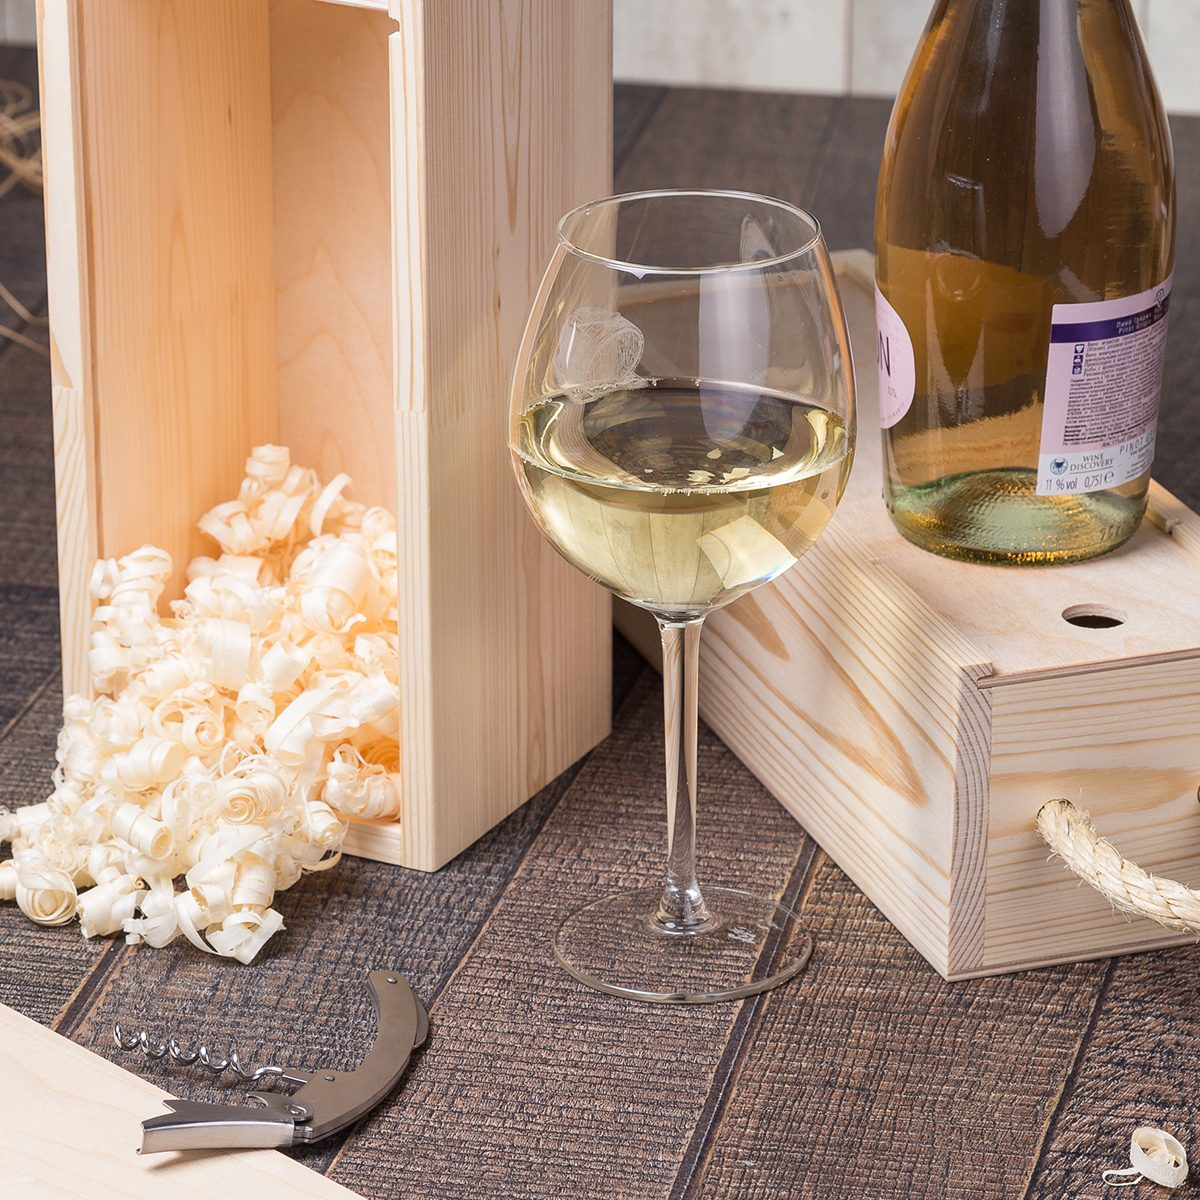 High Angle View Of White Wine With Sawdust In Box